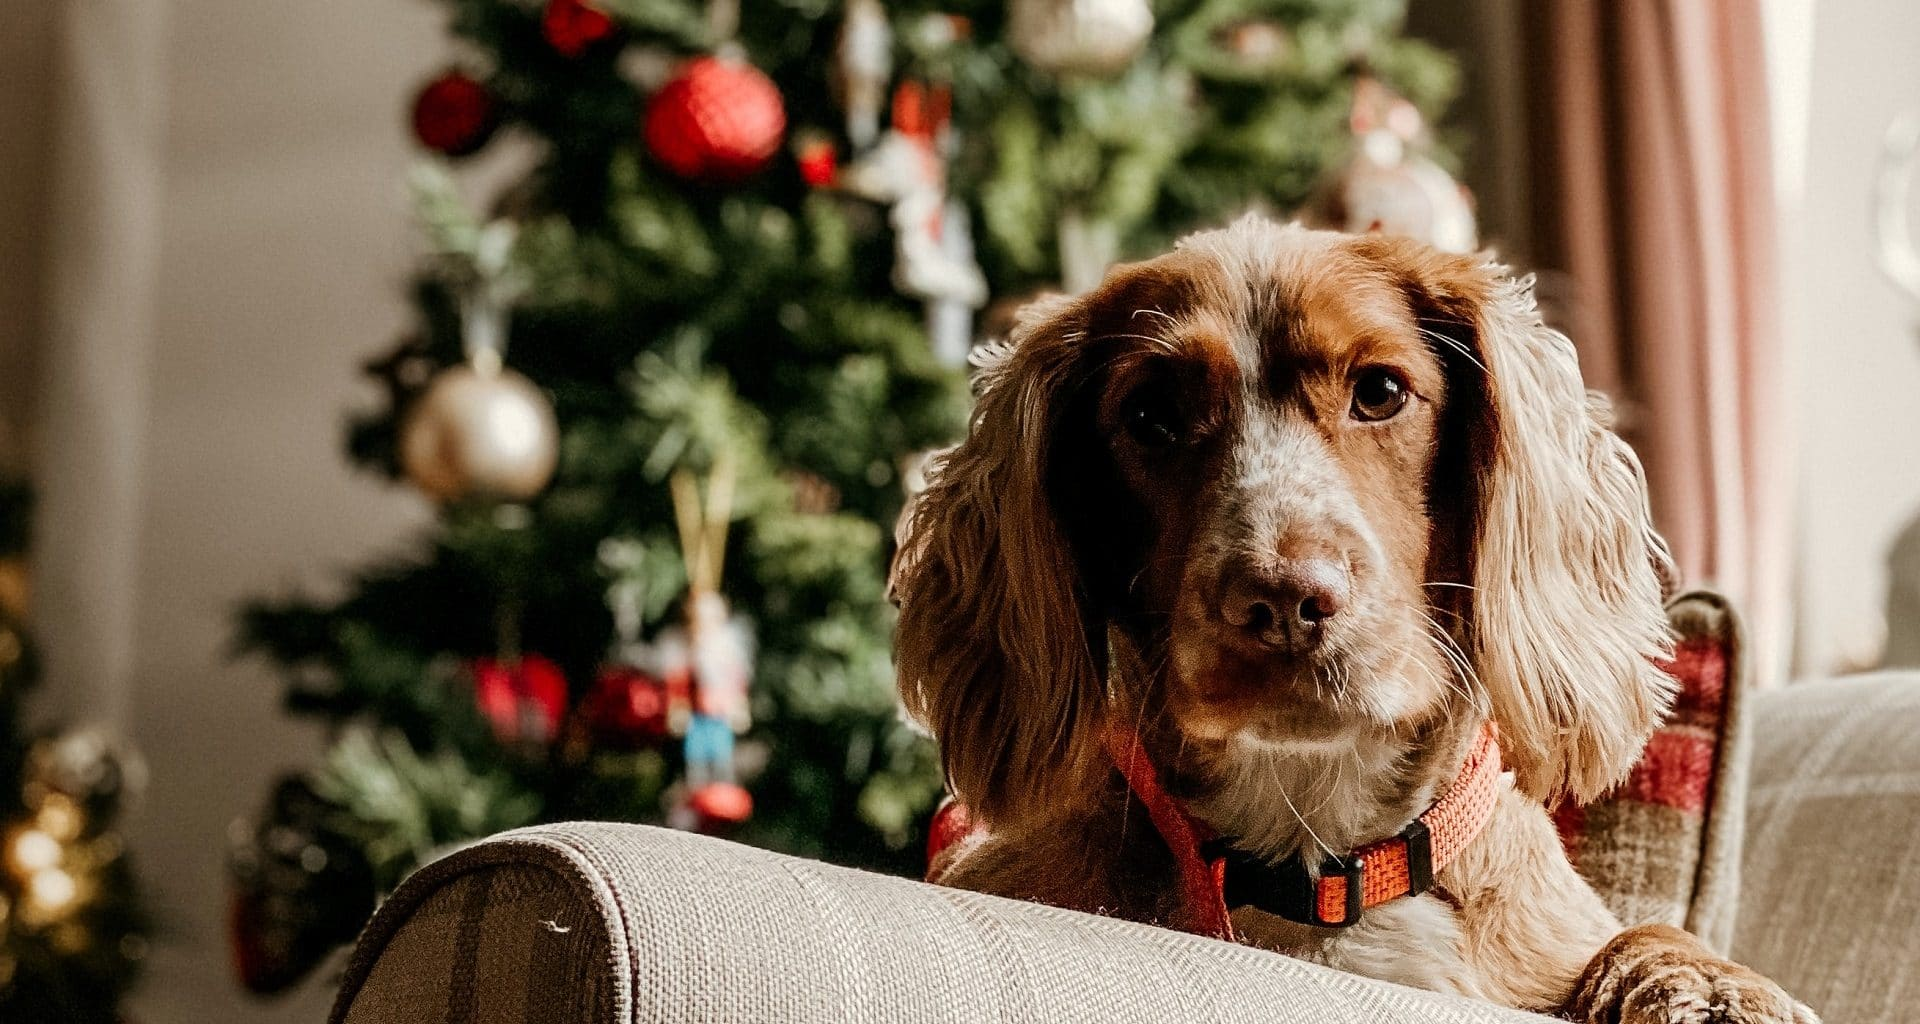 Best Gifts for Dog Owners and Dogs - Featured Image